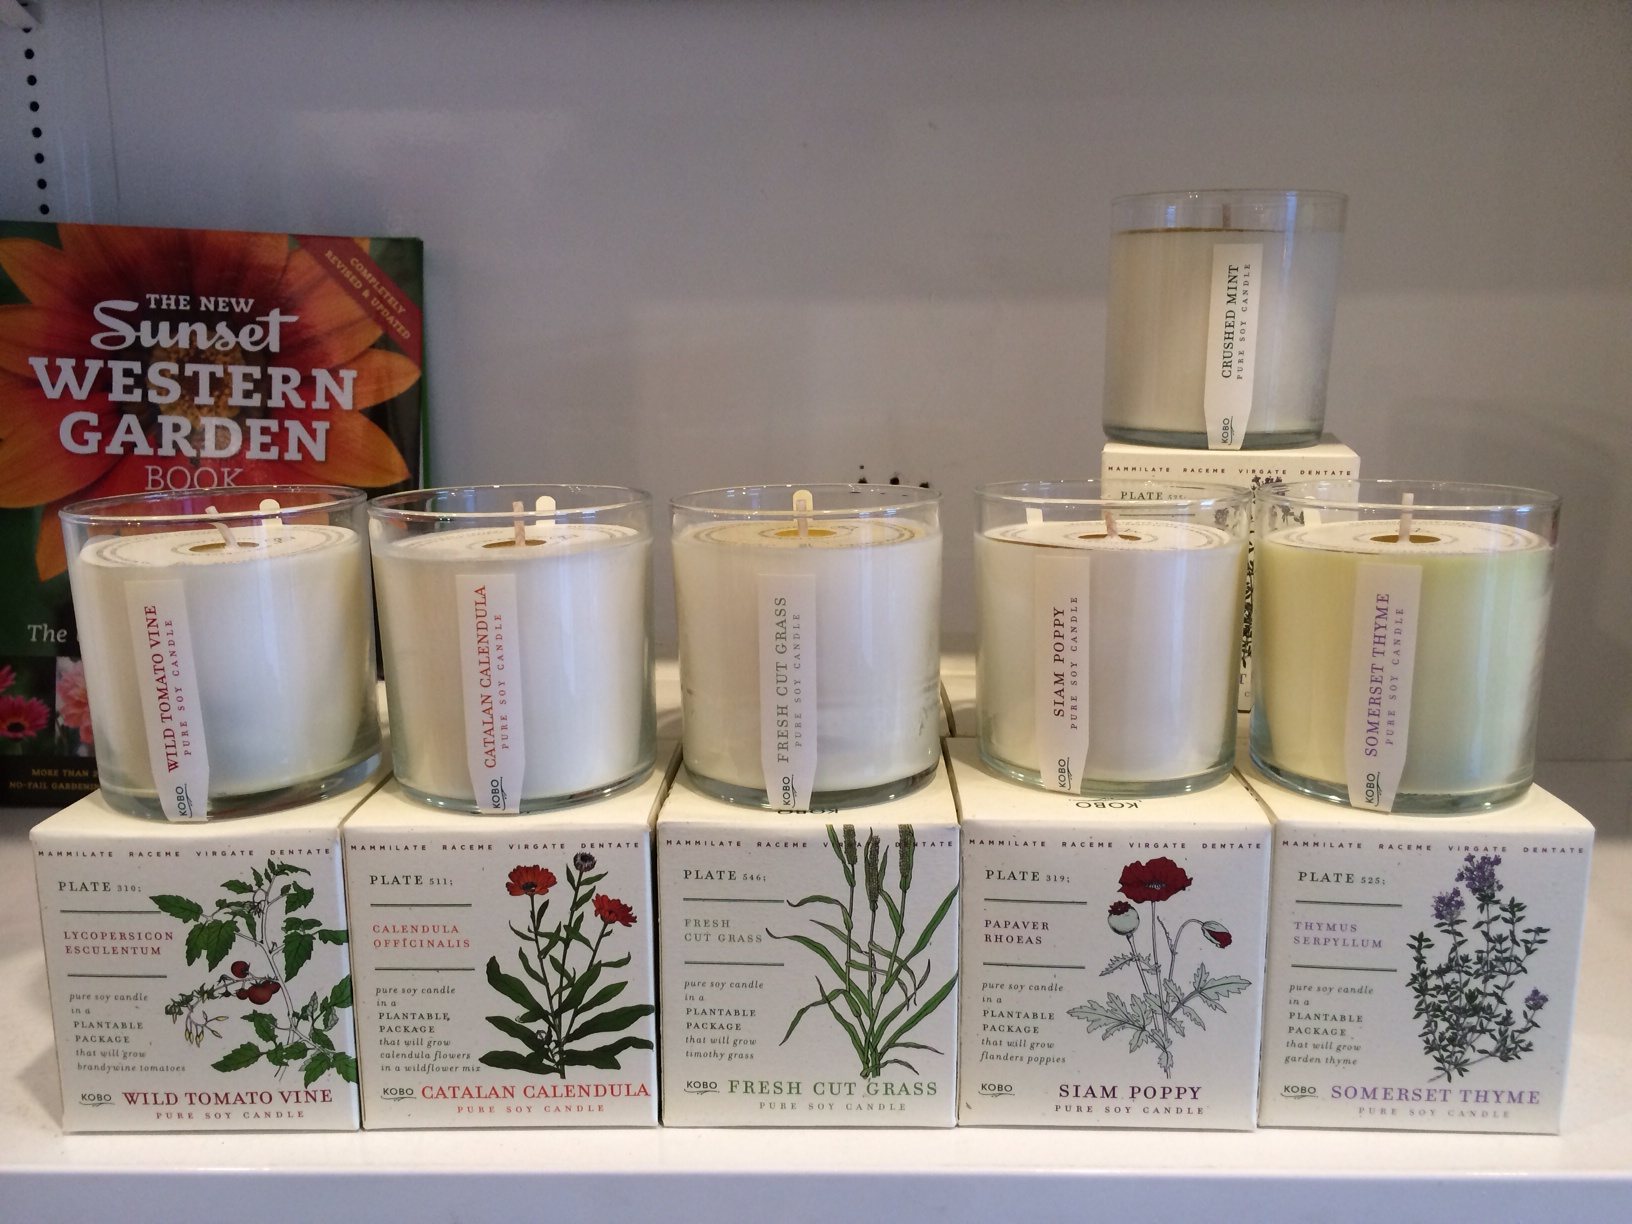 Kobo Candles and Plantable Boxes